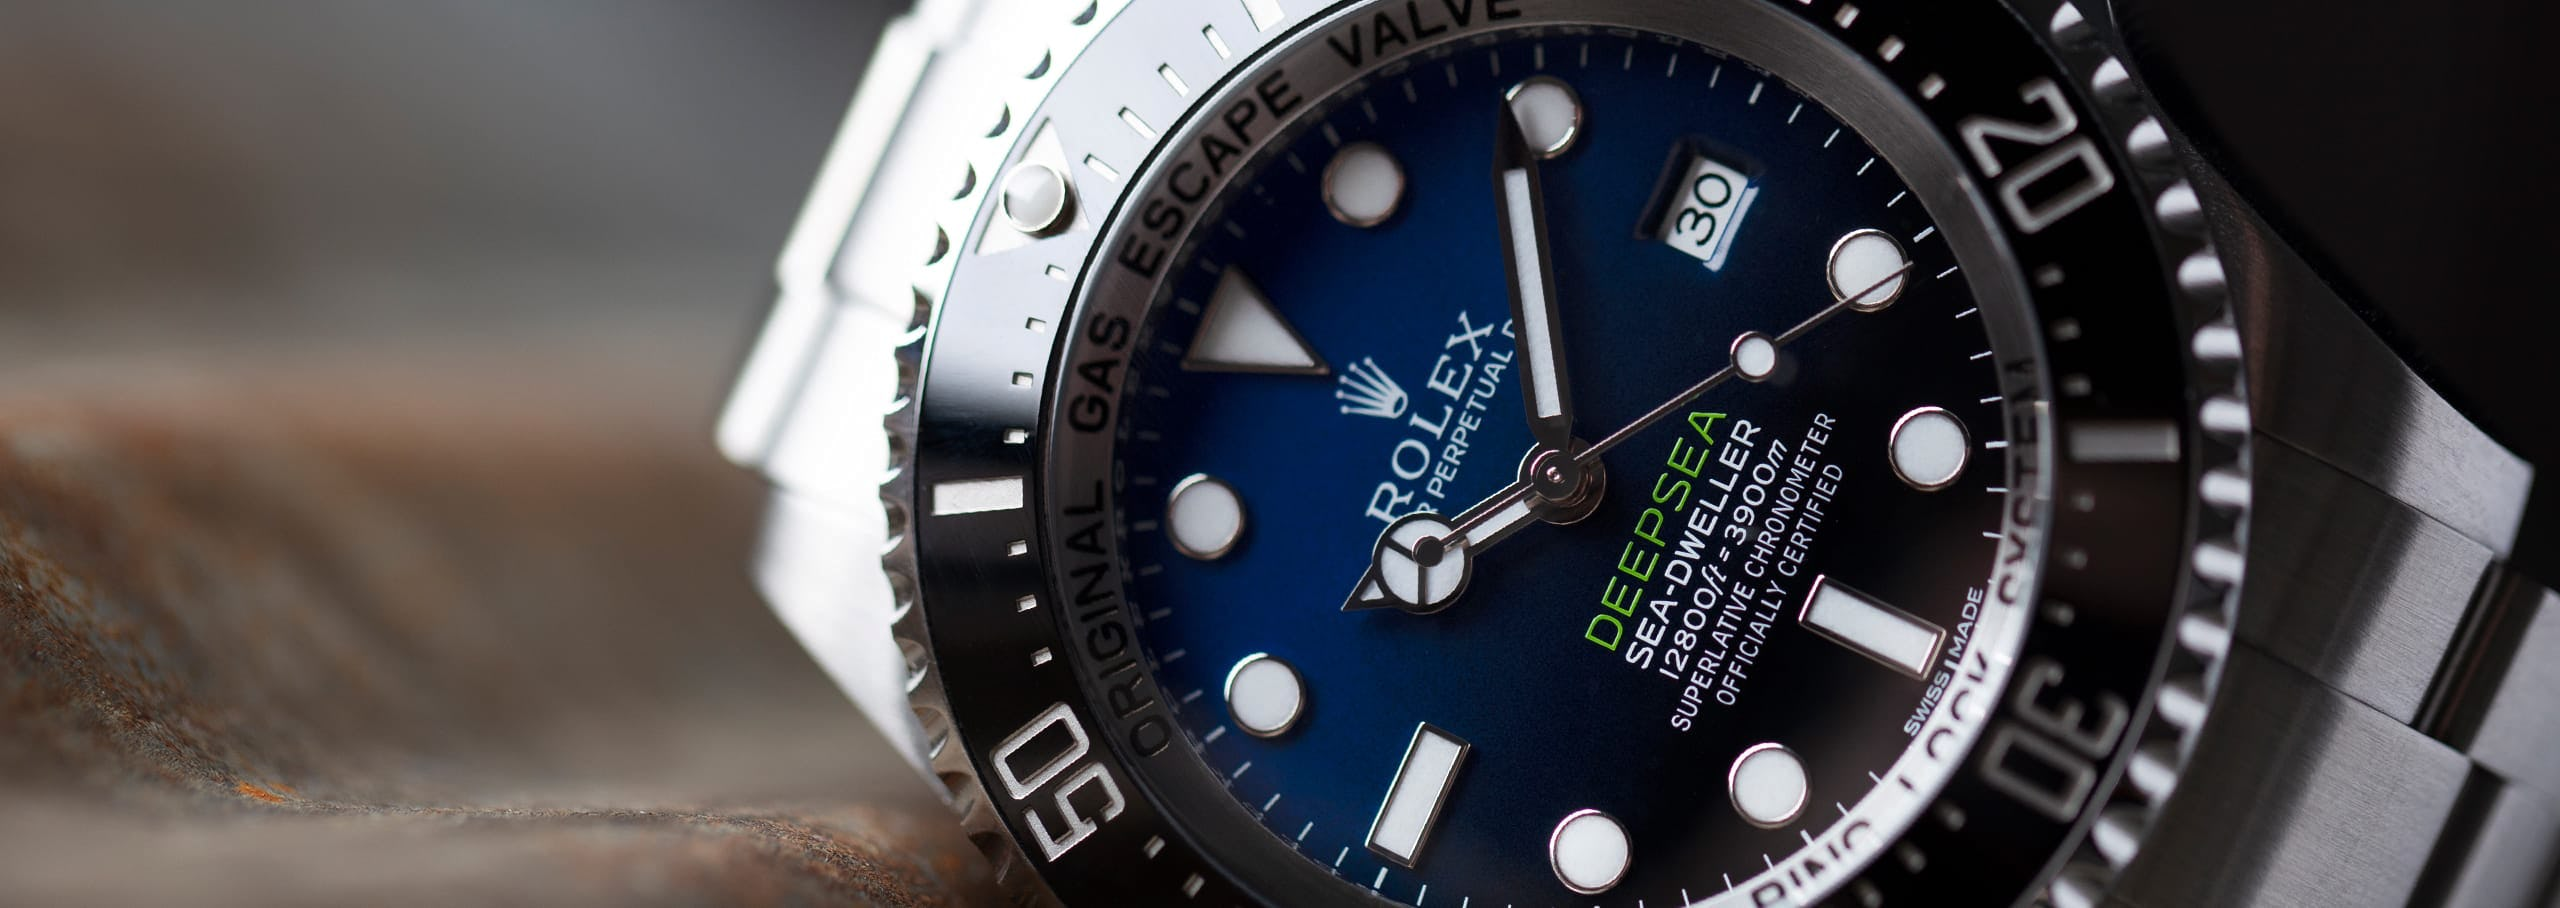 Rolex Deepsea: The Most Extreme Rolex Dive Watch Offered to the Public